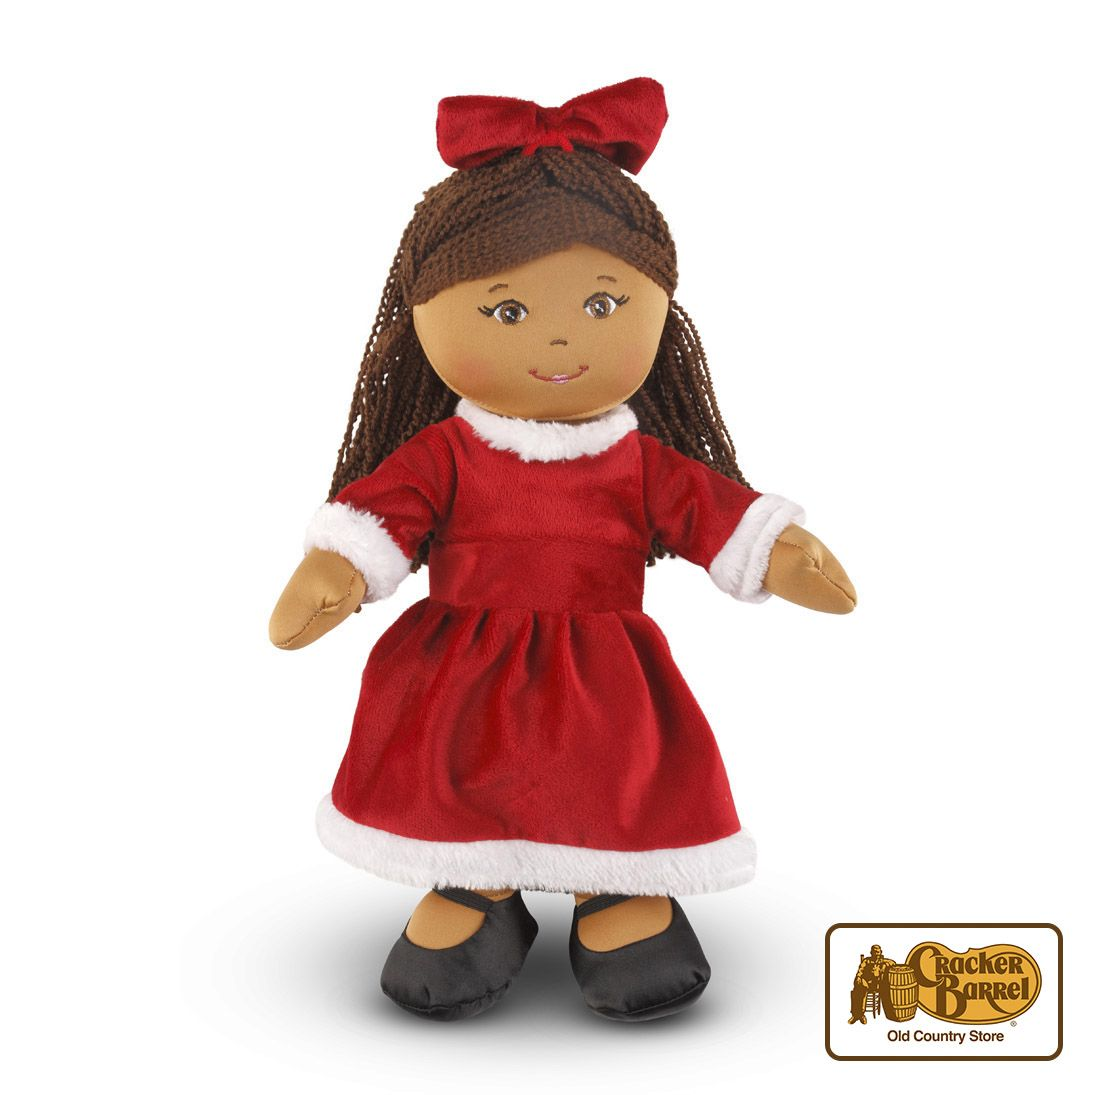 Hi! My name is Hope and I love celebrating Christmas with my family and friends. The most fun is ...